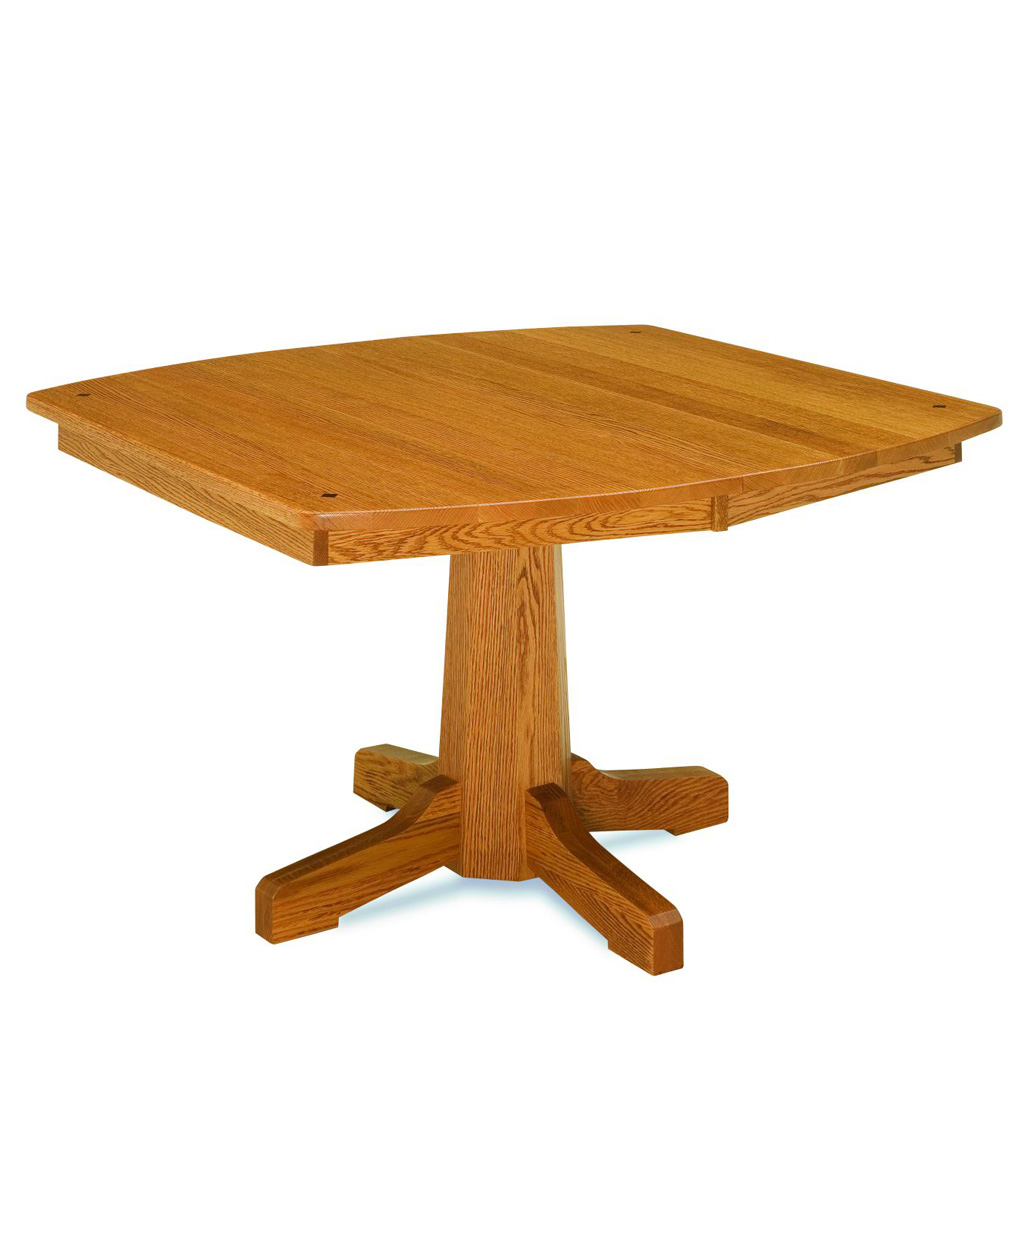 Pinnacle royal dining table amish direct furniture for Royal dining table